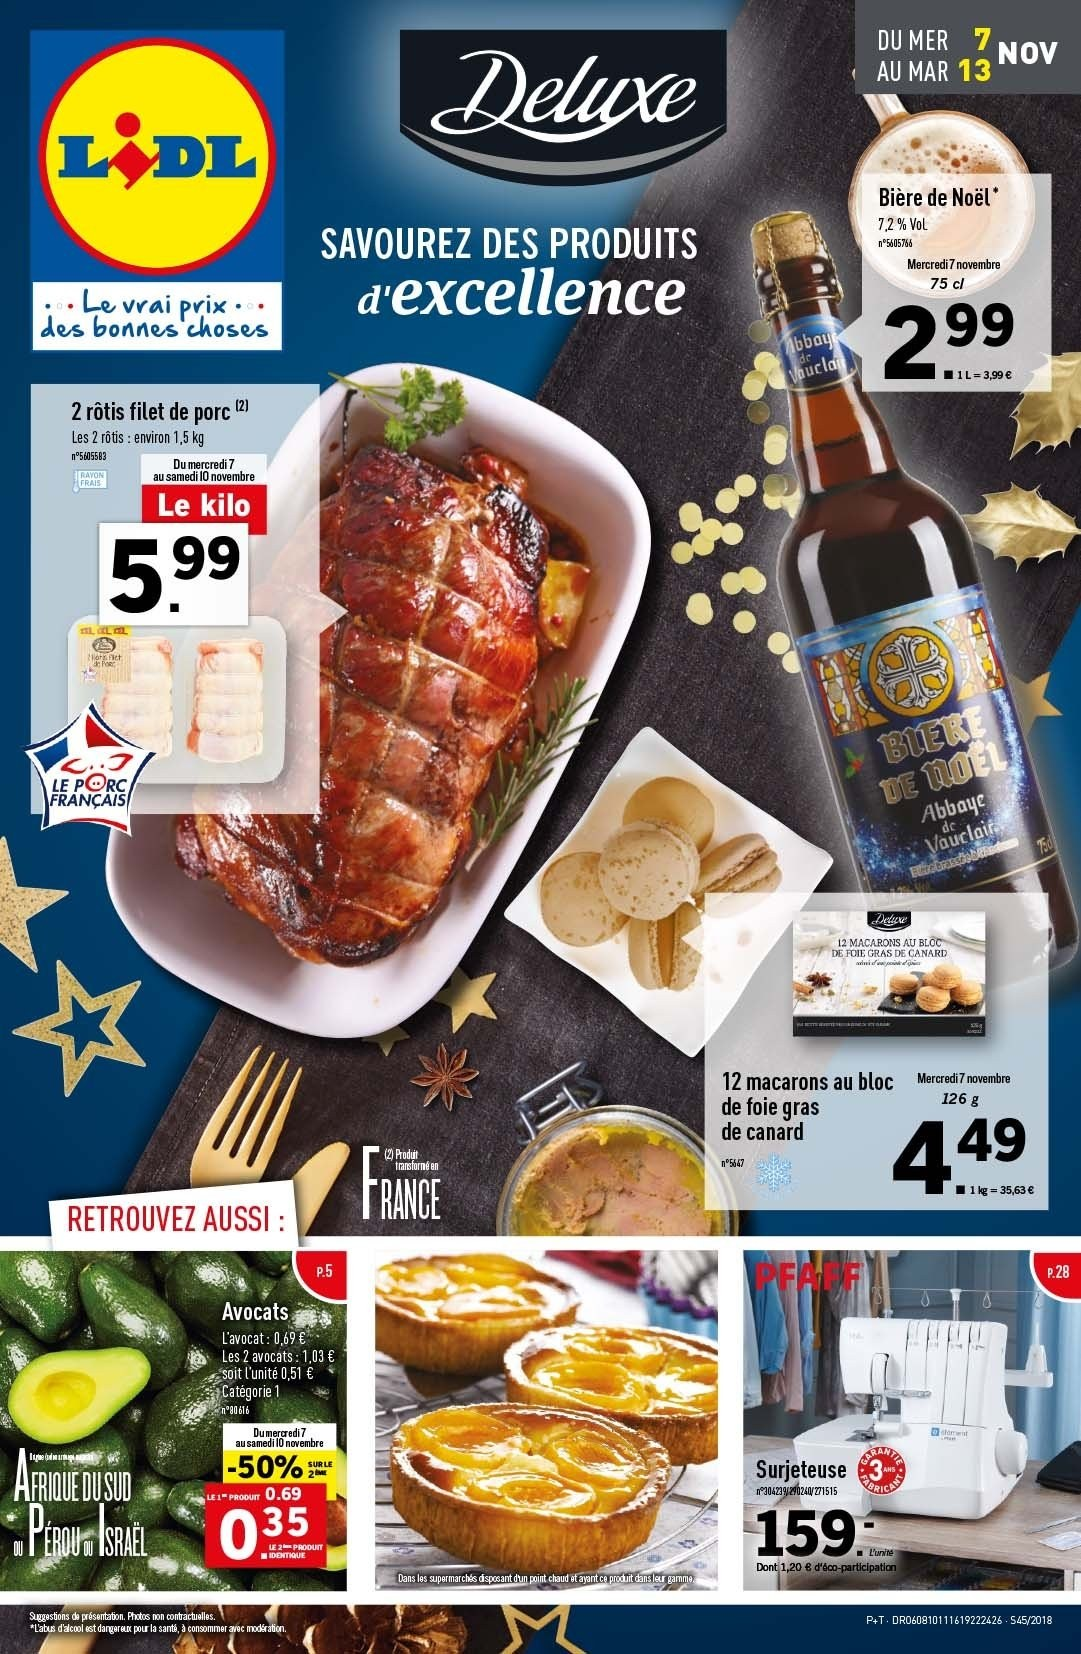 Catalogue Lidl - 07.11.2018 - 13.11.2018. Page 1.